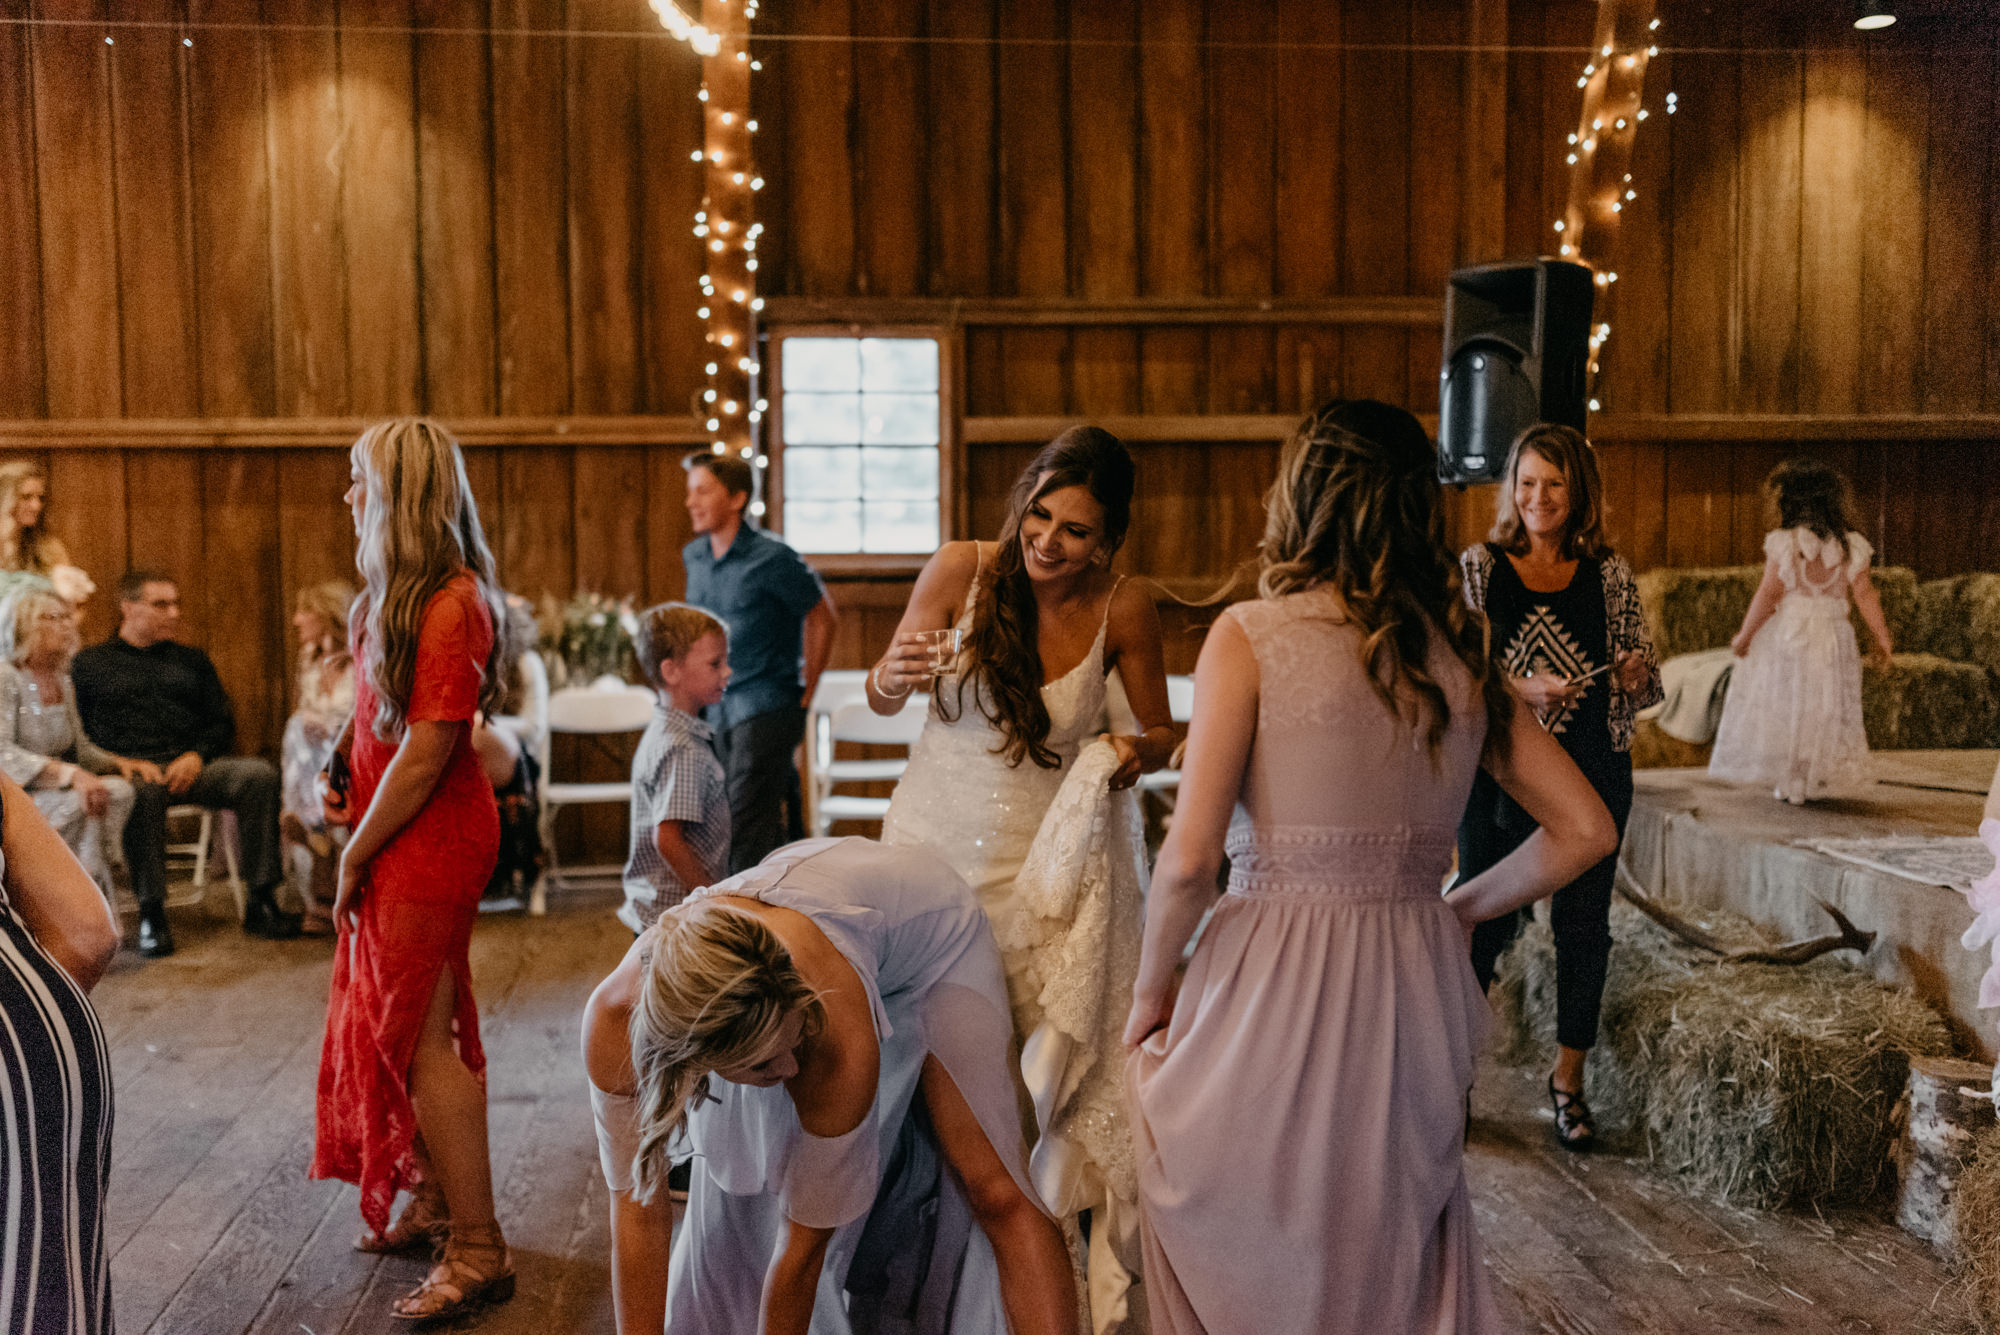 201-portland-northwest-wedding-bubble-exit-barn-string-lights.jpg